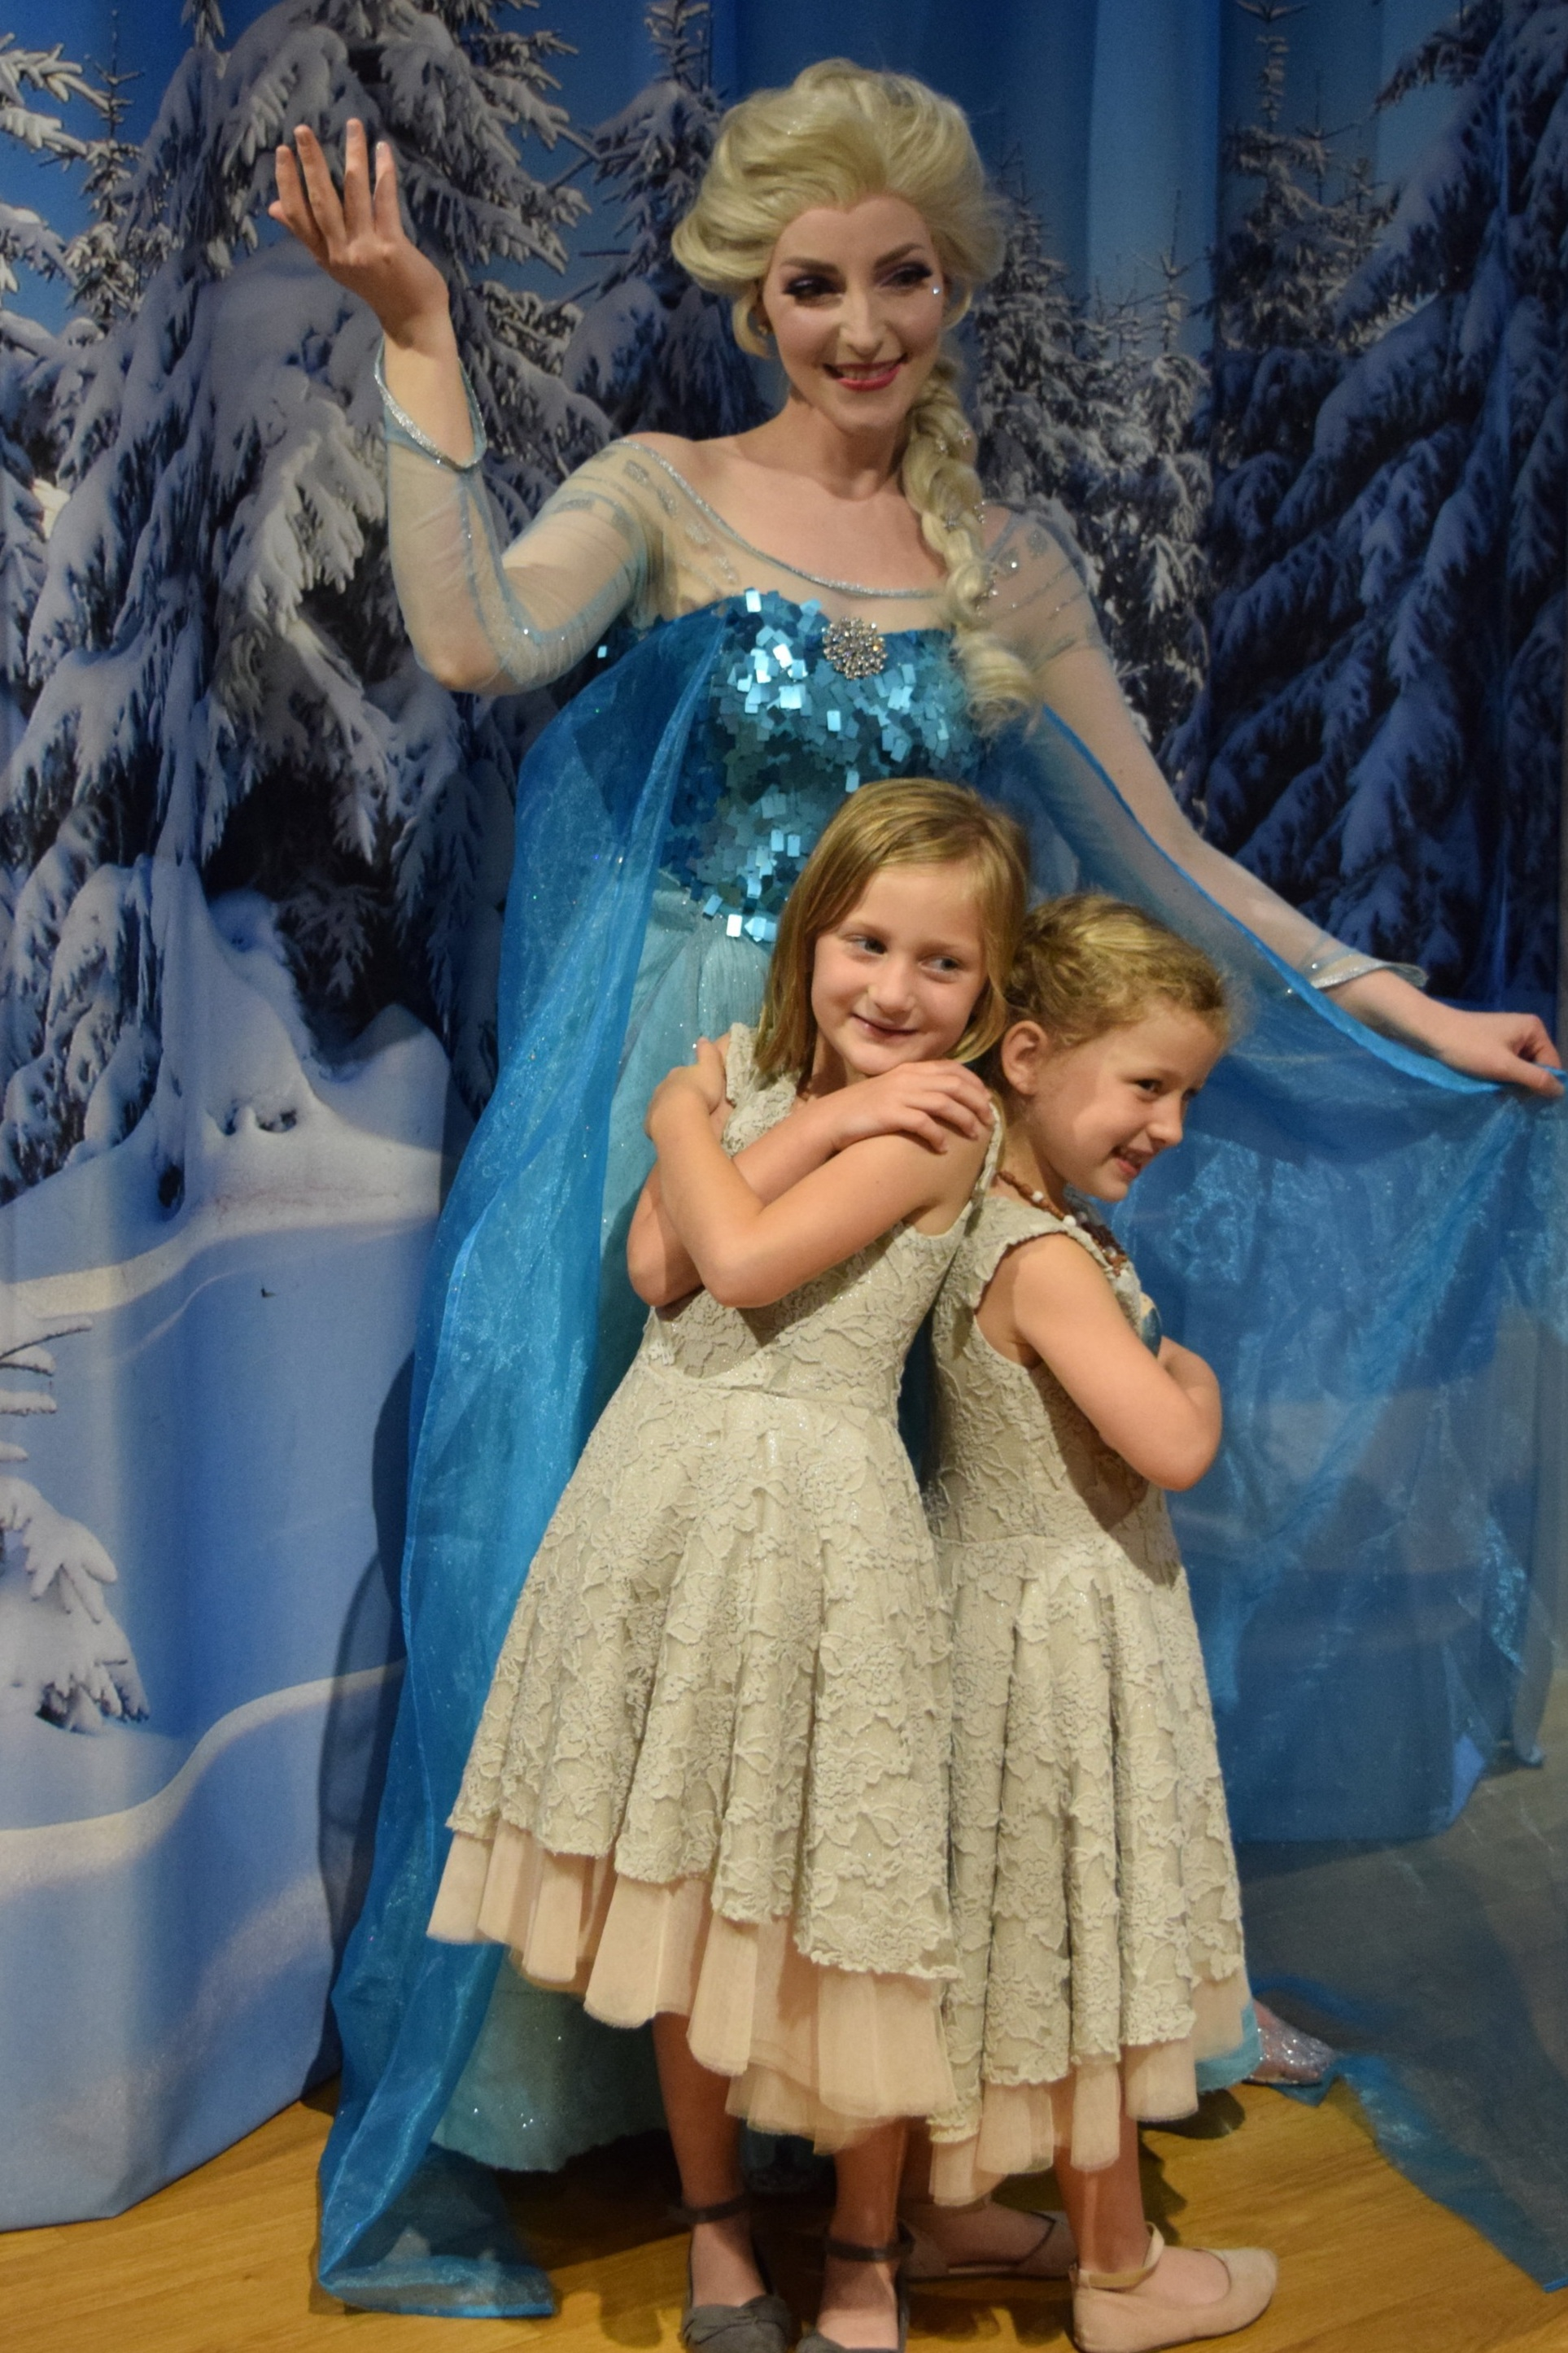 Make a Gingerbread House and meet Elsa the Snow Queen, too!